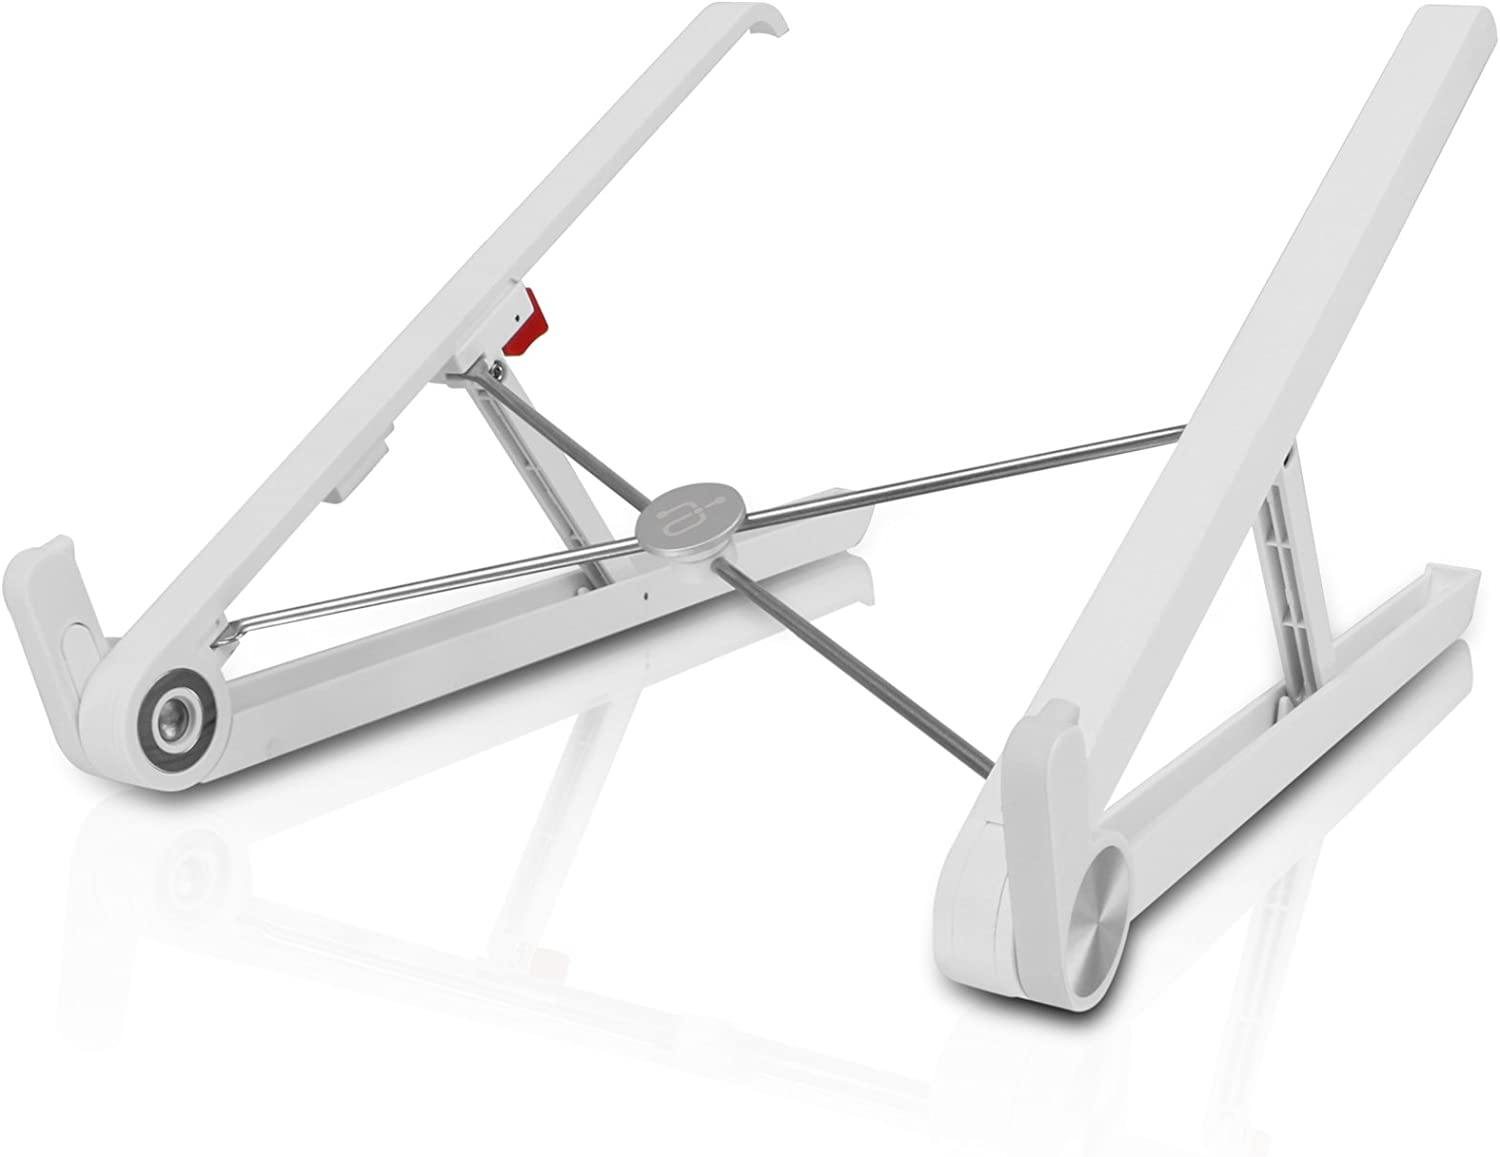 "Aluratek VLKH1S Laptop Stand for MacBook and PC Laptop, Aluminium Adjustable/Portable, Cooling Universal Stand for size 10""-17"" Screen Laptop"